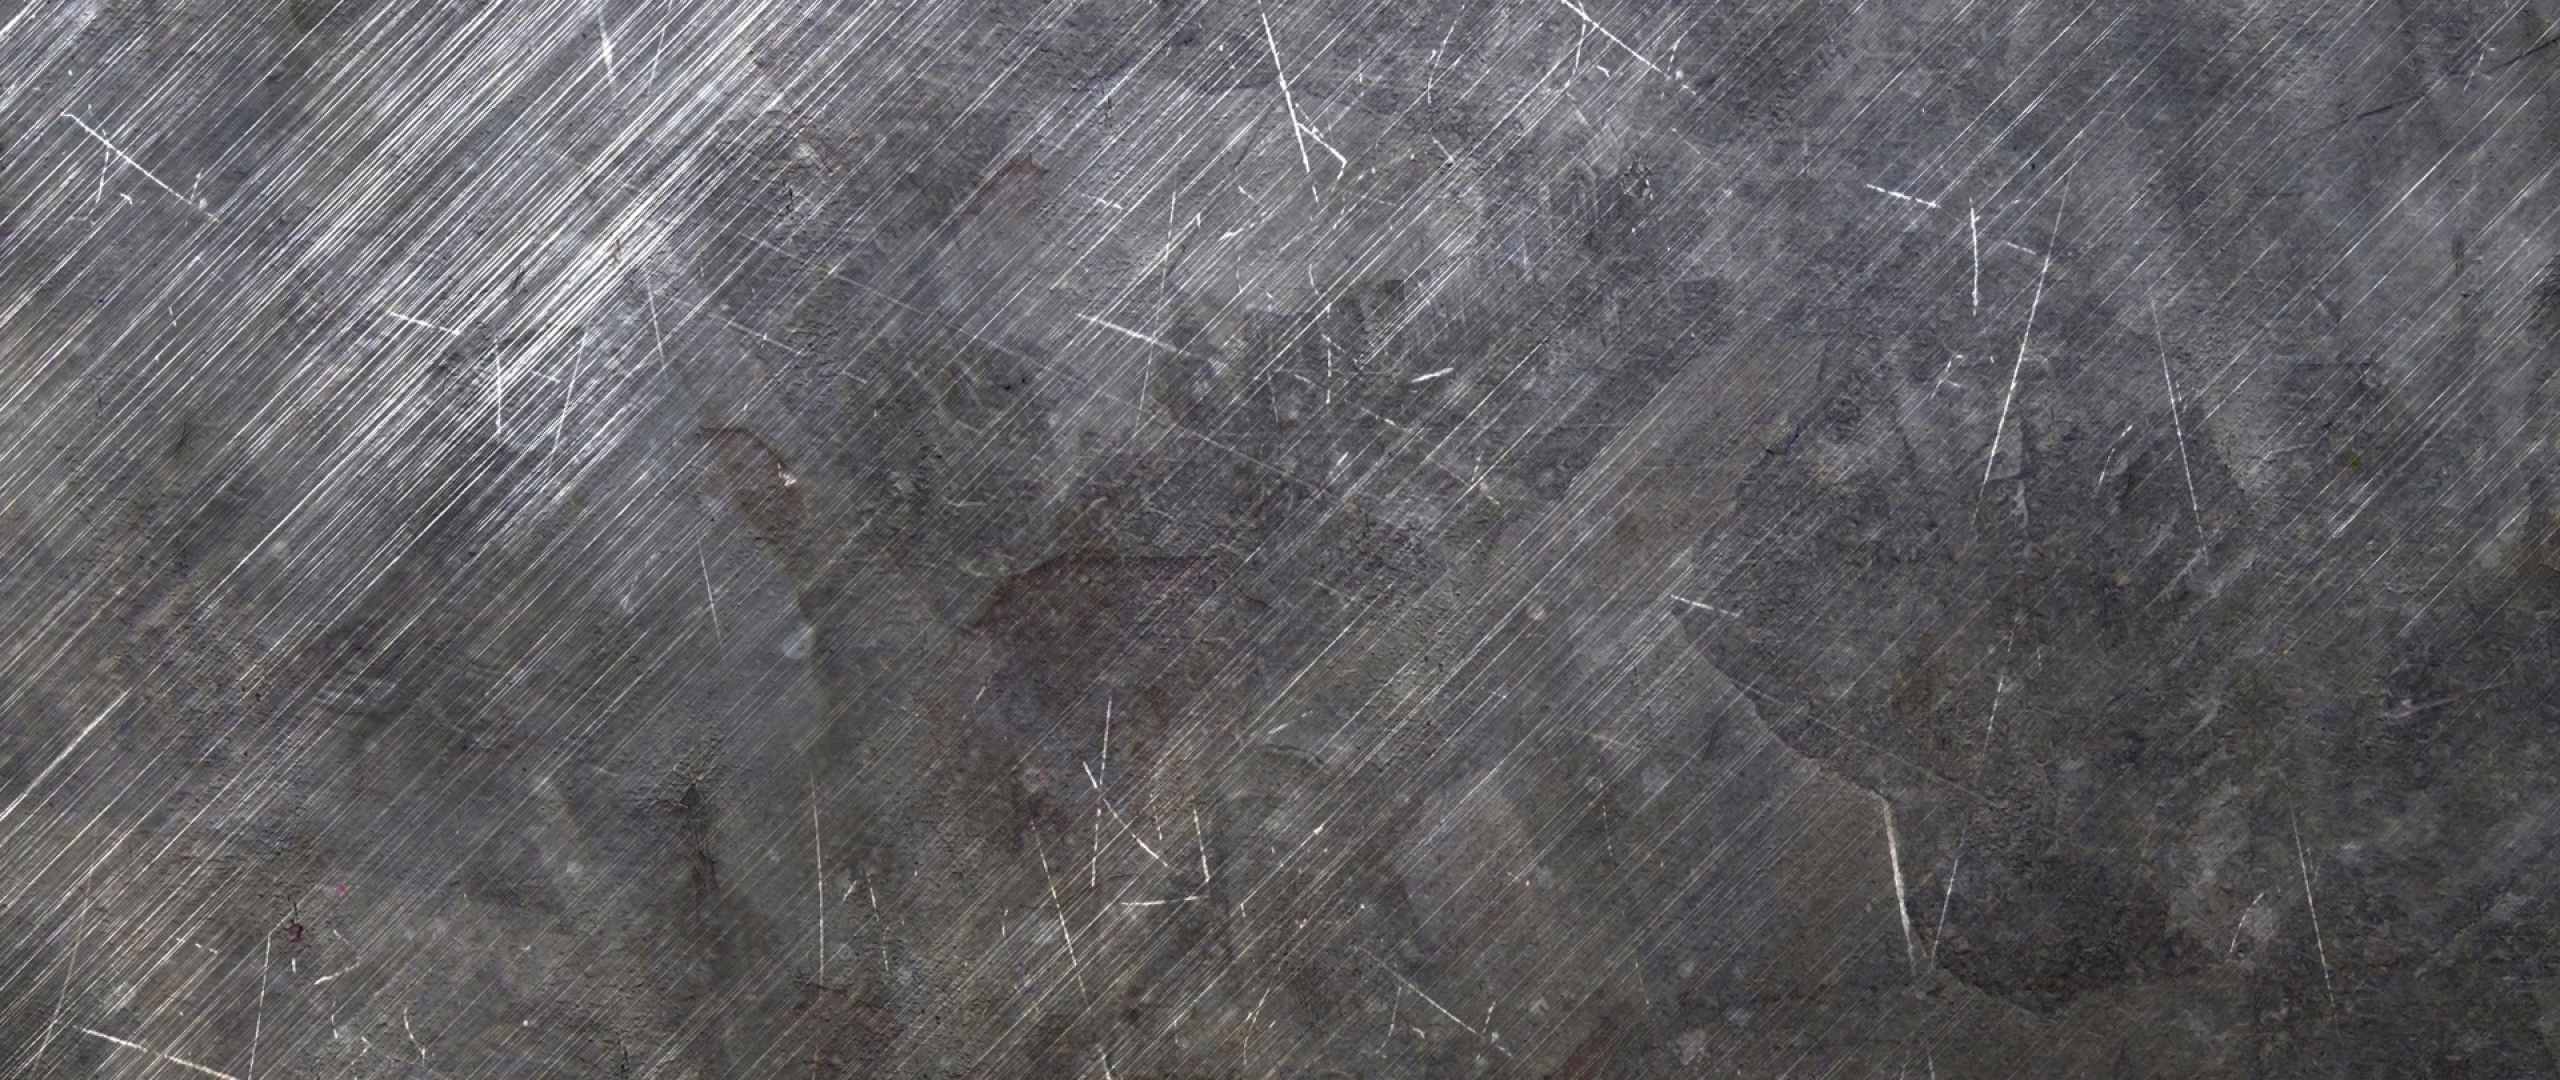 metal-scratches-steel-surface-background-gray-color-wallpapersbyte ...